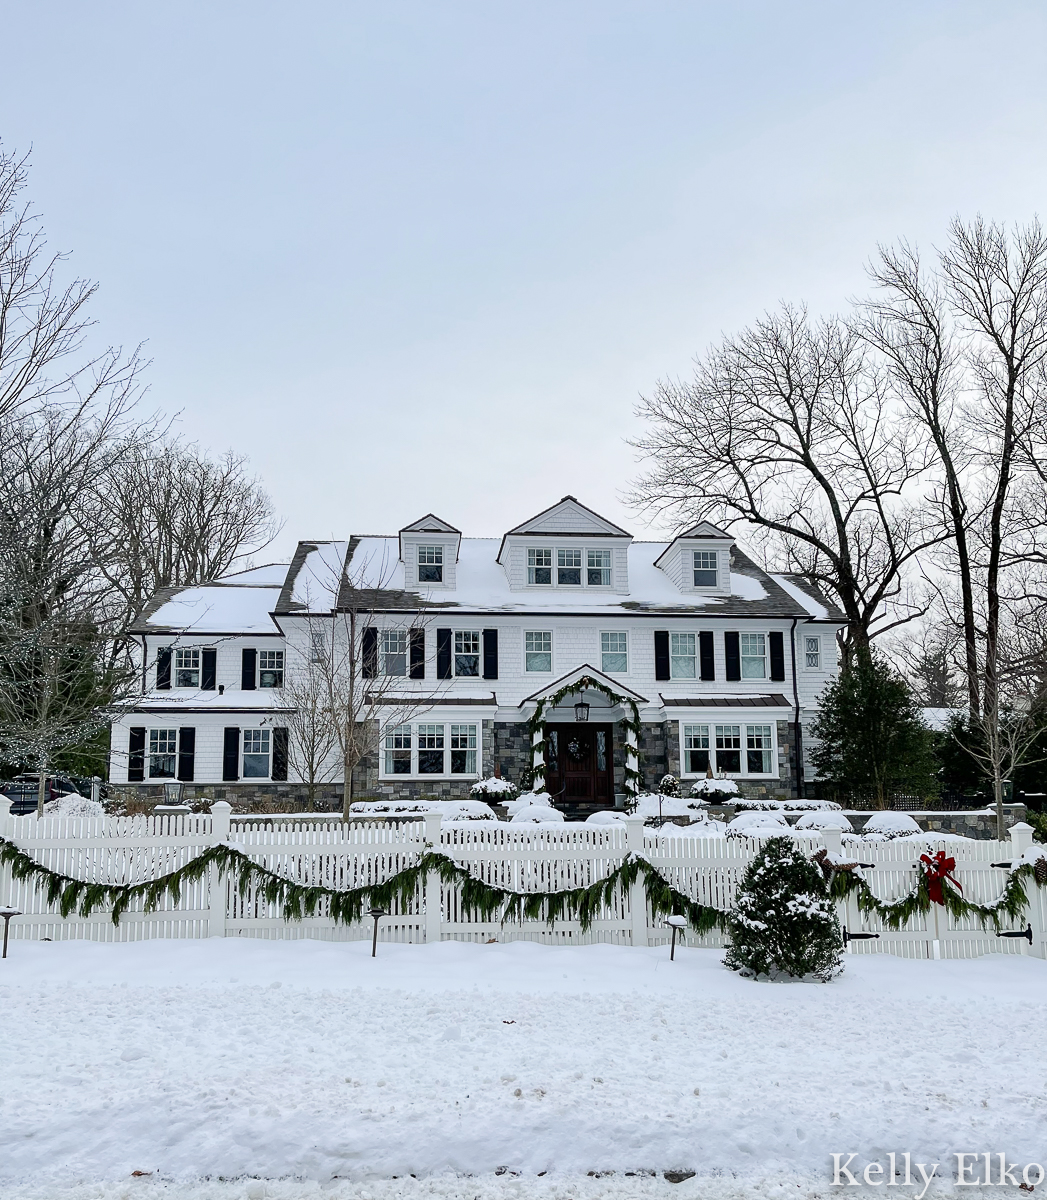 Beautiful old white house covered in snow kellyelko.com